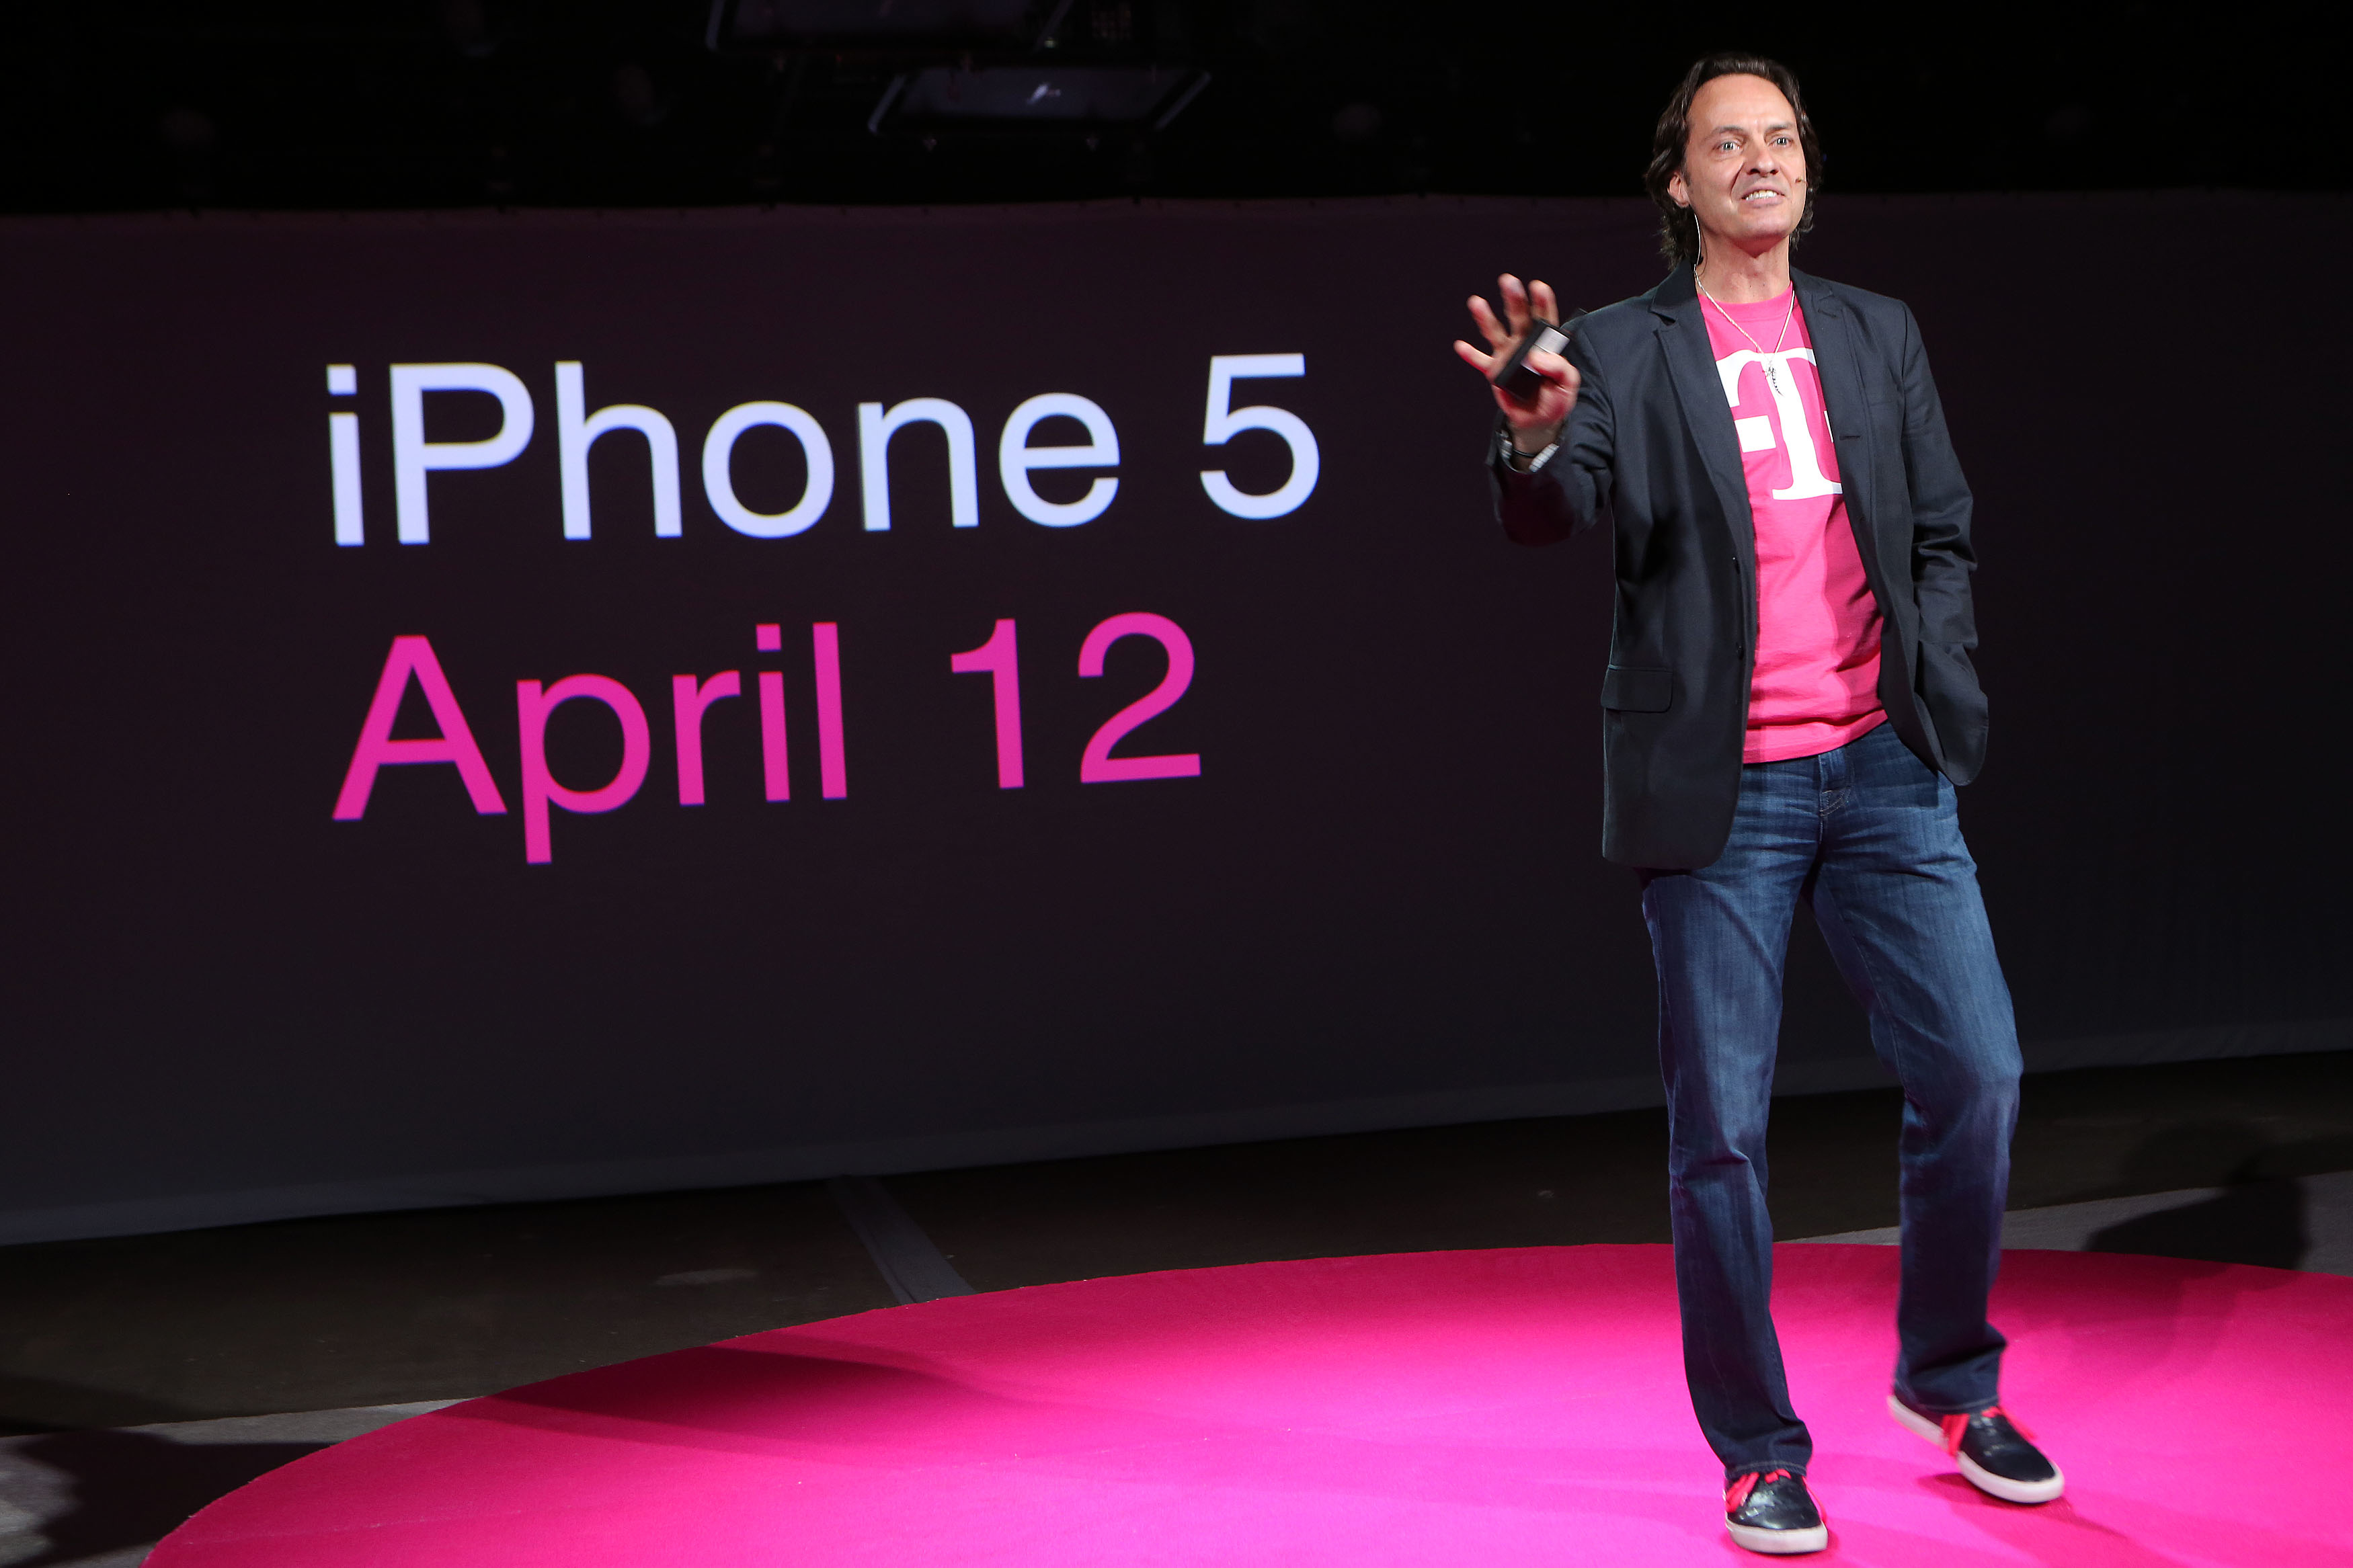 T-Mobile CEO John Legere kicking off the iPhone and T-Mobile's Un-carrier strategy last year